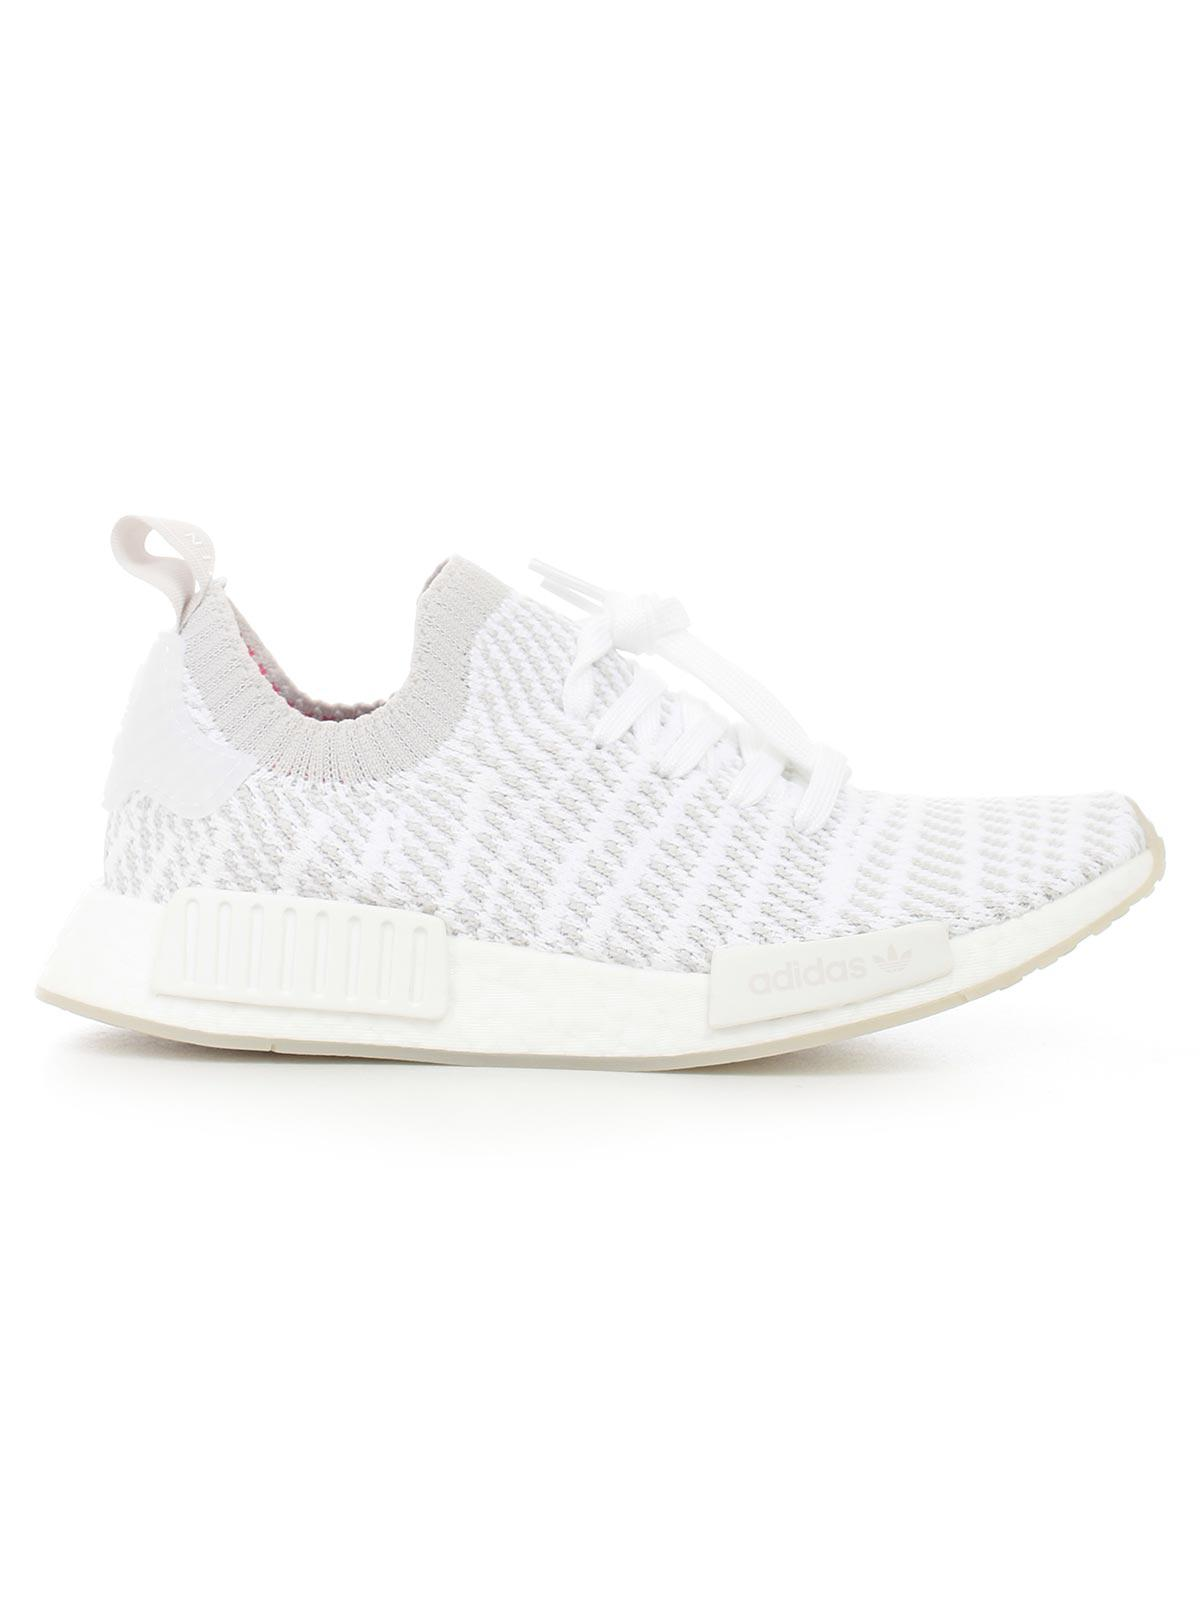 84732a9e5ae46 Lyst - Adidas Originals Sneakers Nmd R1 in White for Men